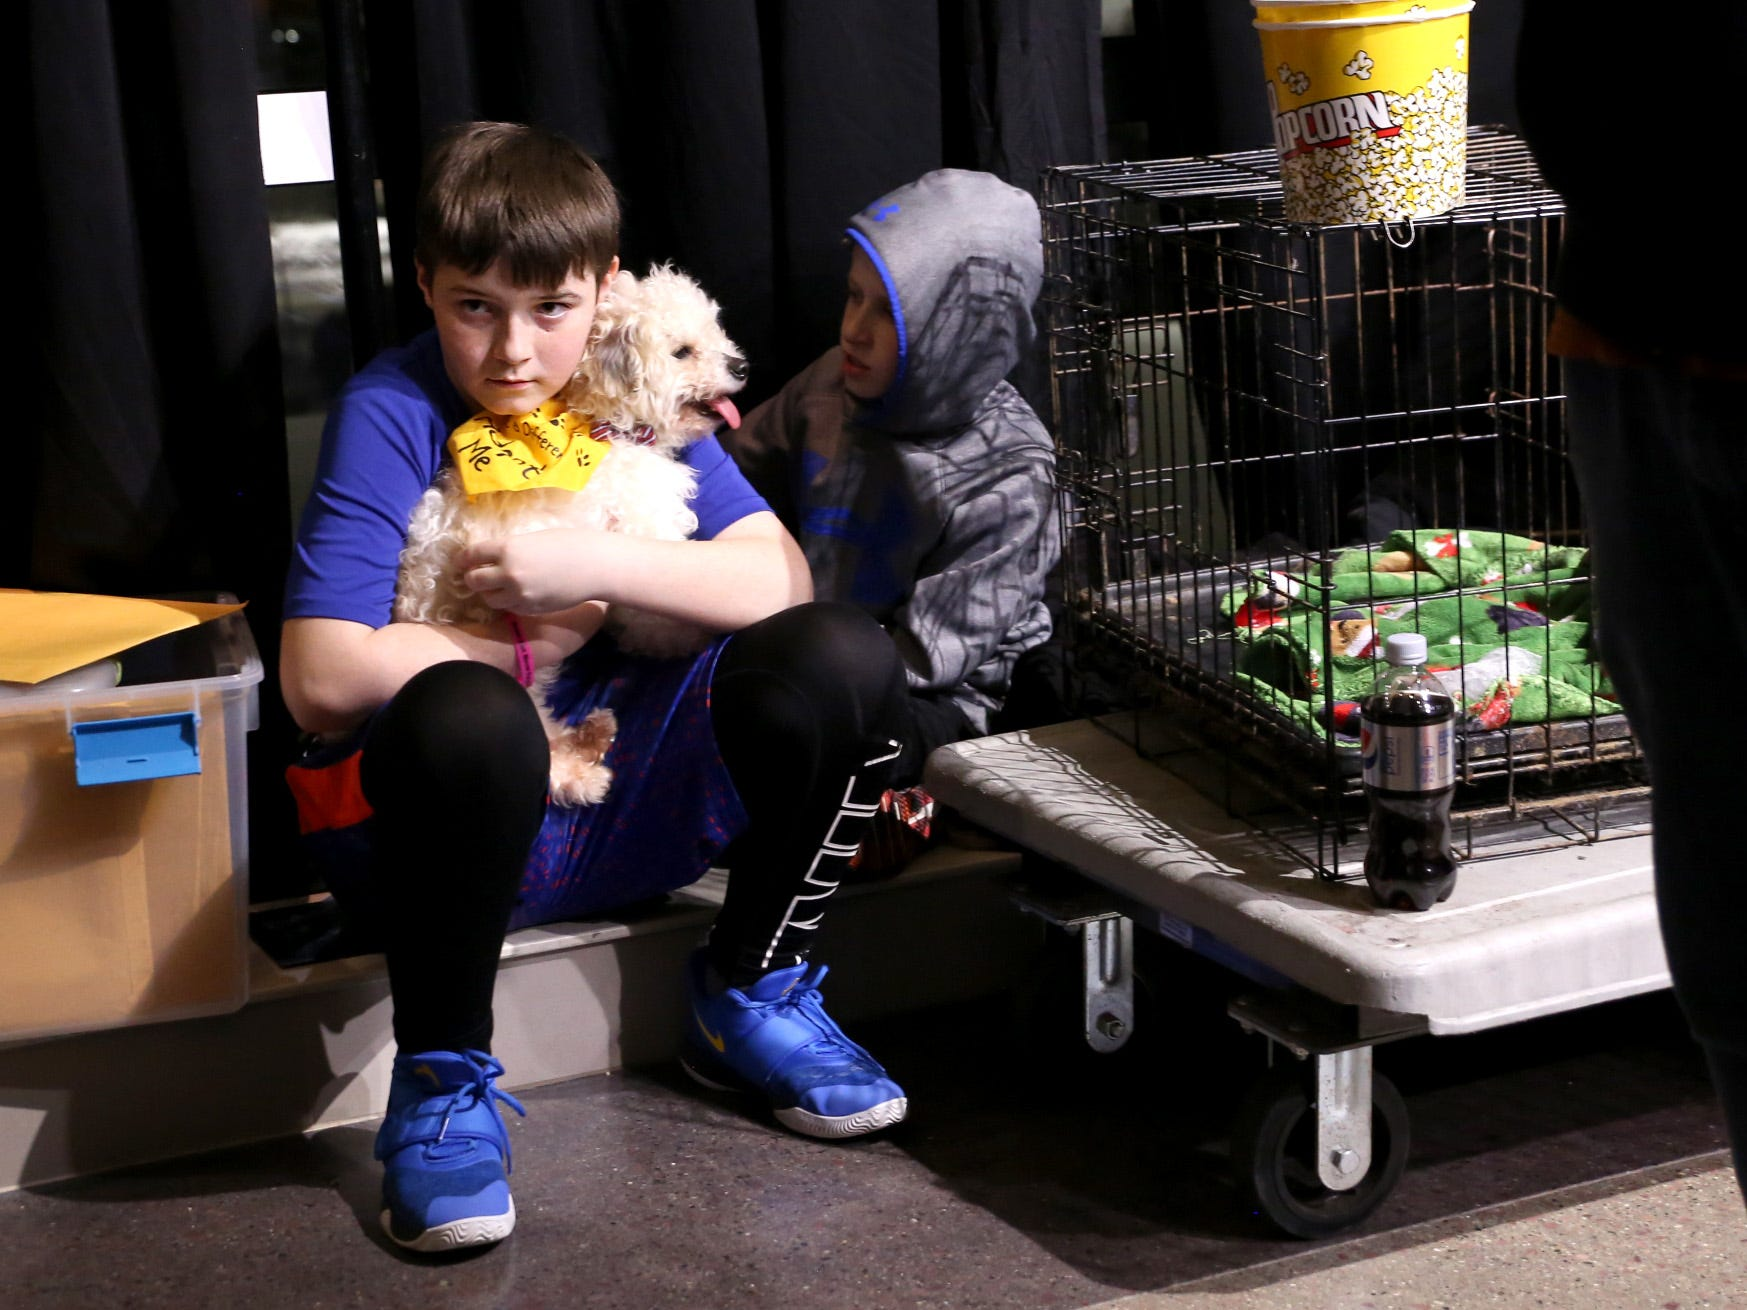 Jacob Underbeg, 12, pets an adoptable dog during a Stampede game against the Omaha Lancers at the Denny Sanford Premier Center Feb. 23, 2019.